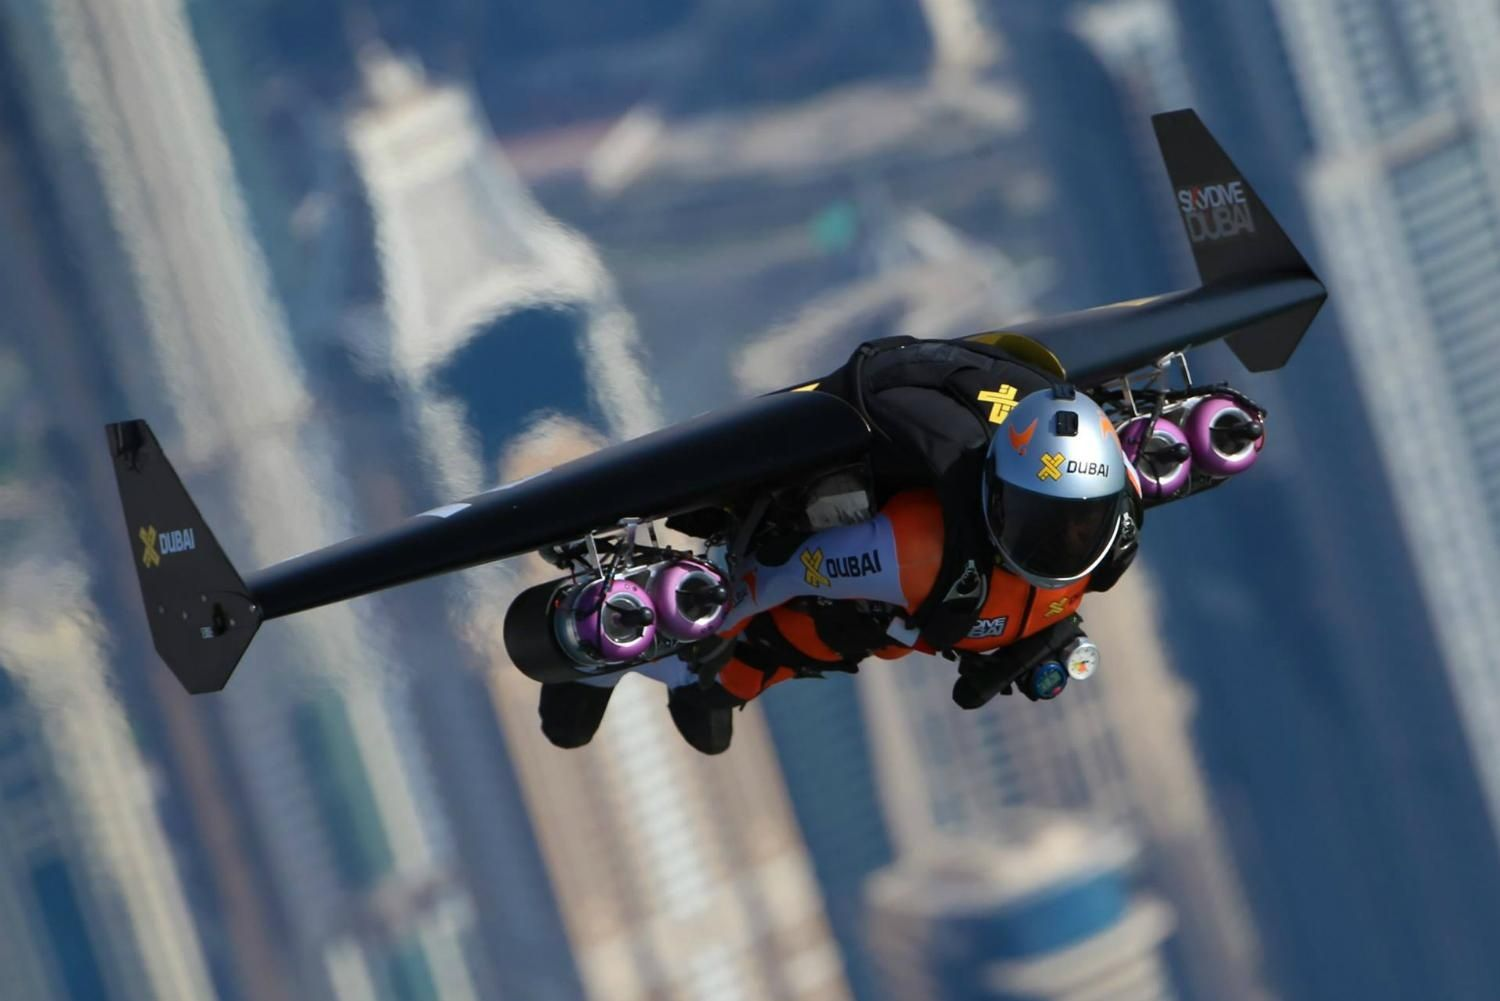 Flying With Incredible RealLife Jetpacks In Dubai Real Life And - Crazy video of two guys flying jetpacks over dubai